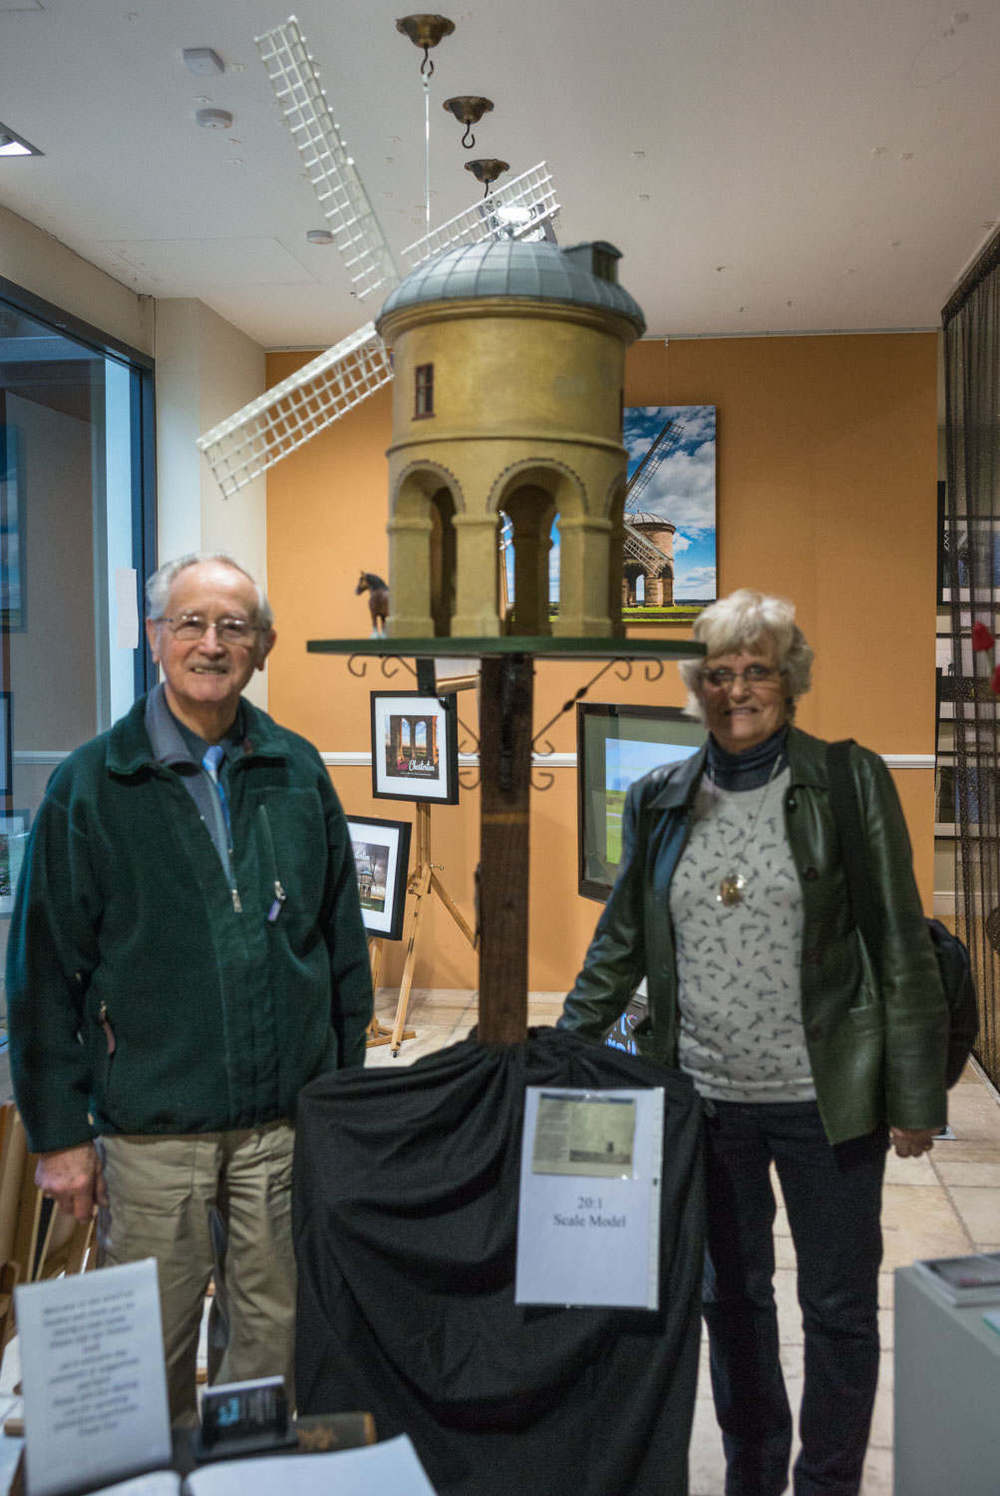 Mr & Mrs Hurley with their 20:1 scale model of Chesterton